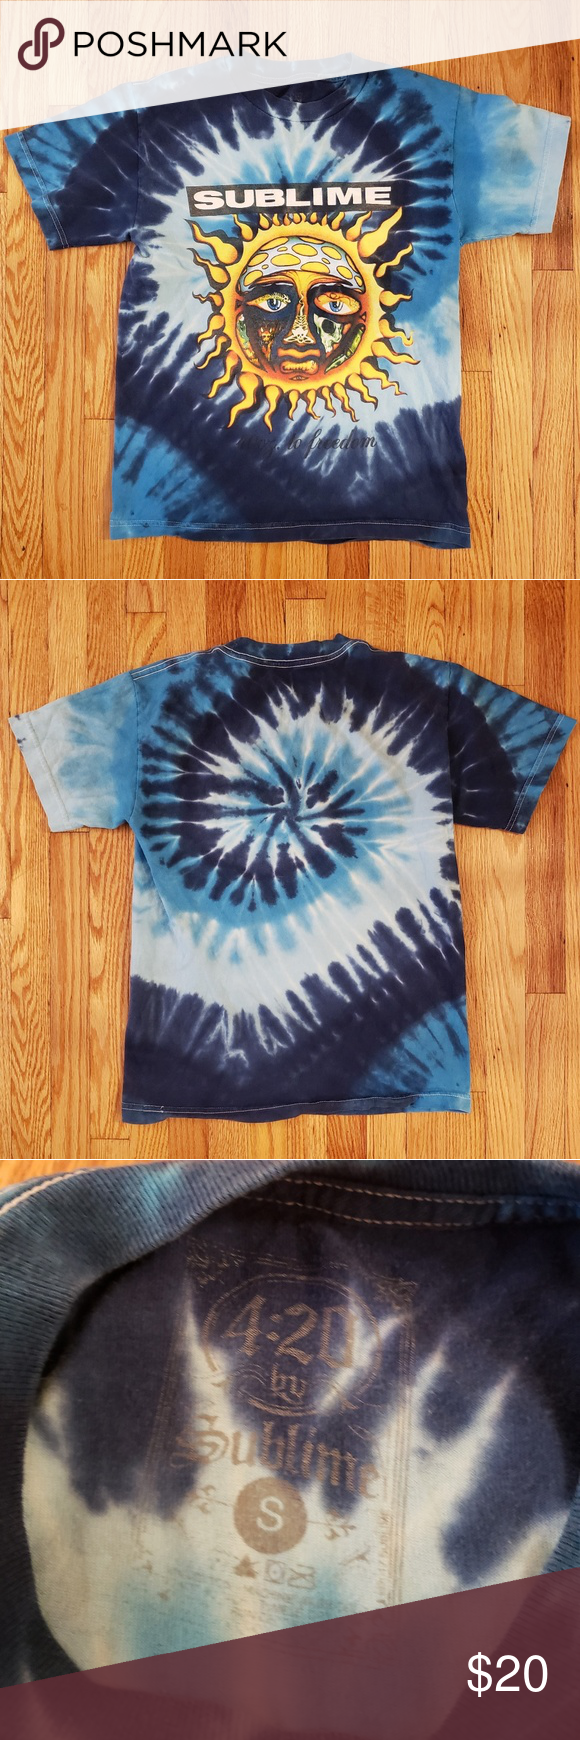 09555de5f Sublime Sun Tie Dye Tee 40 oz. To freedom tee Size: S Color: Blue Tie dye  Condition: Excellant Sublime Shirts Tees - Short Sleeve